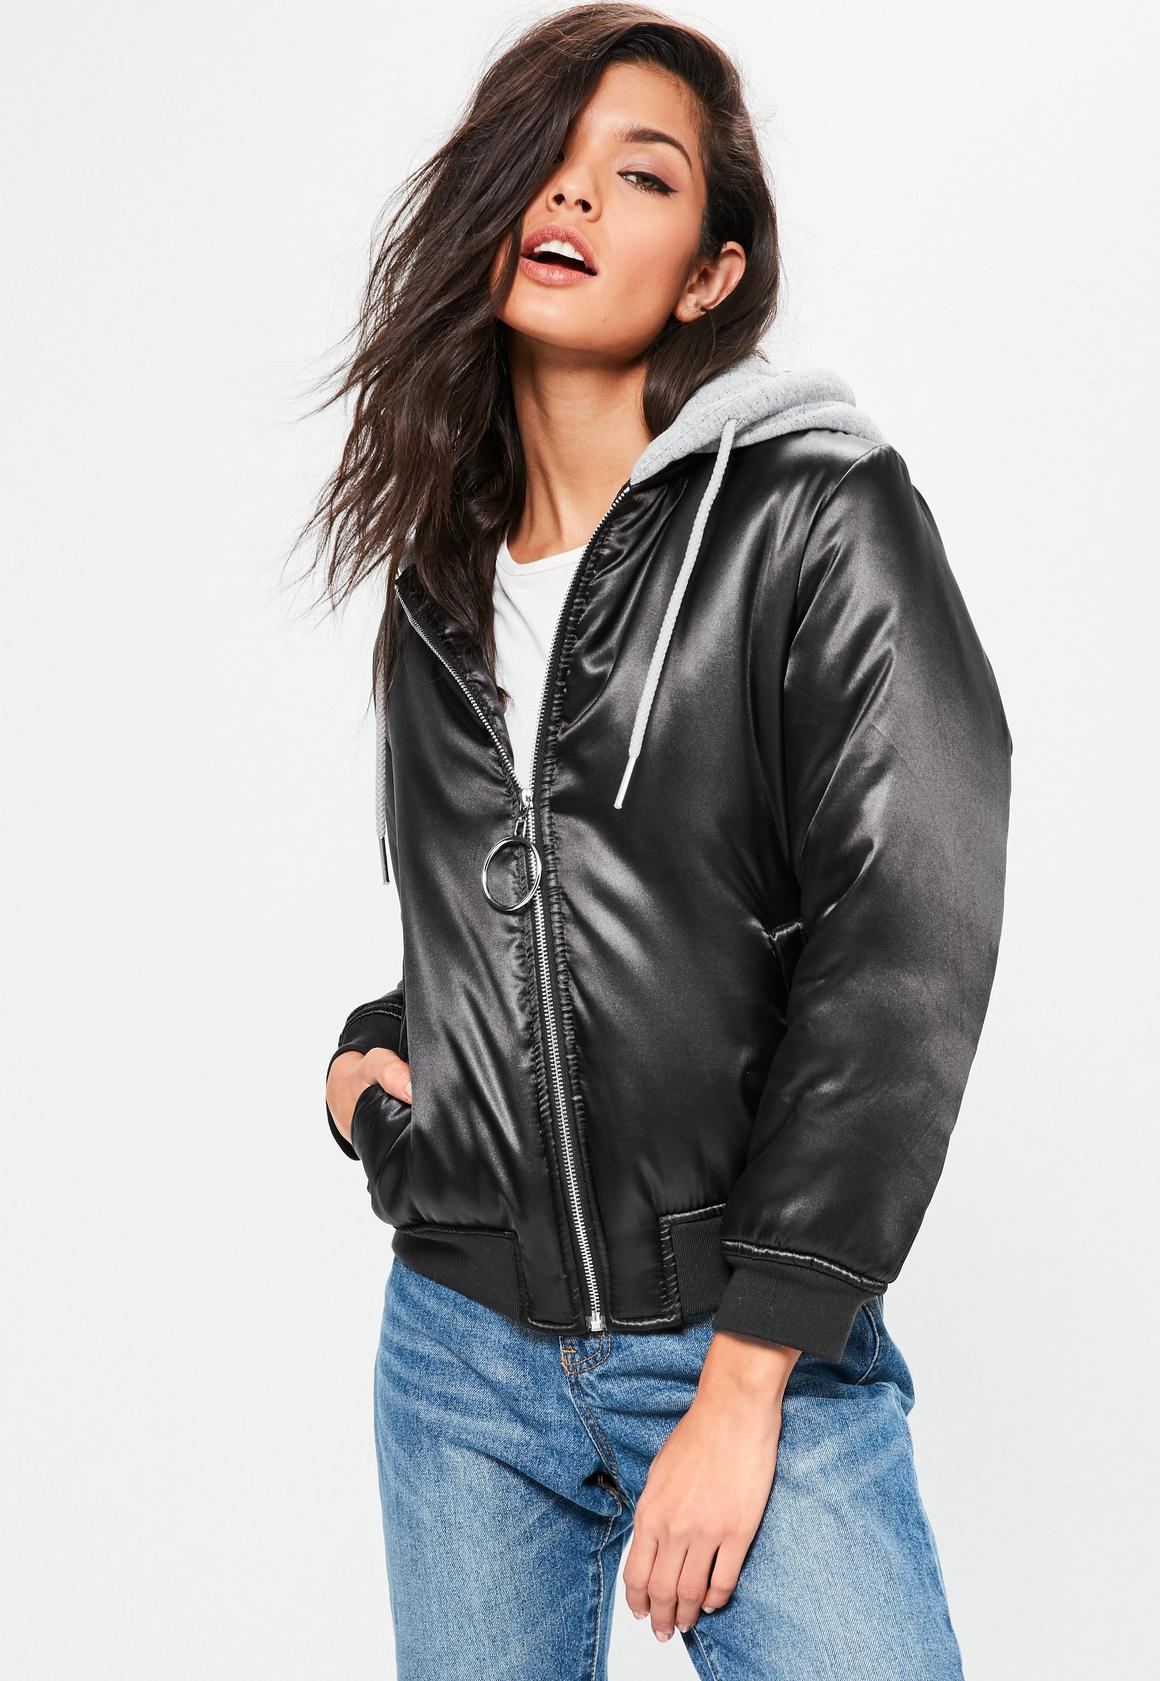 Women's Bomber Jacket - Varsity & Flight Jackets | Missguided